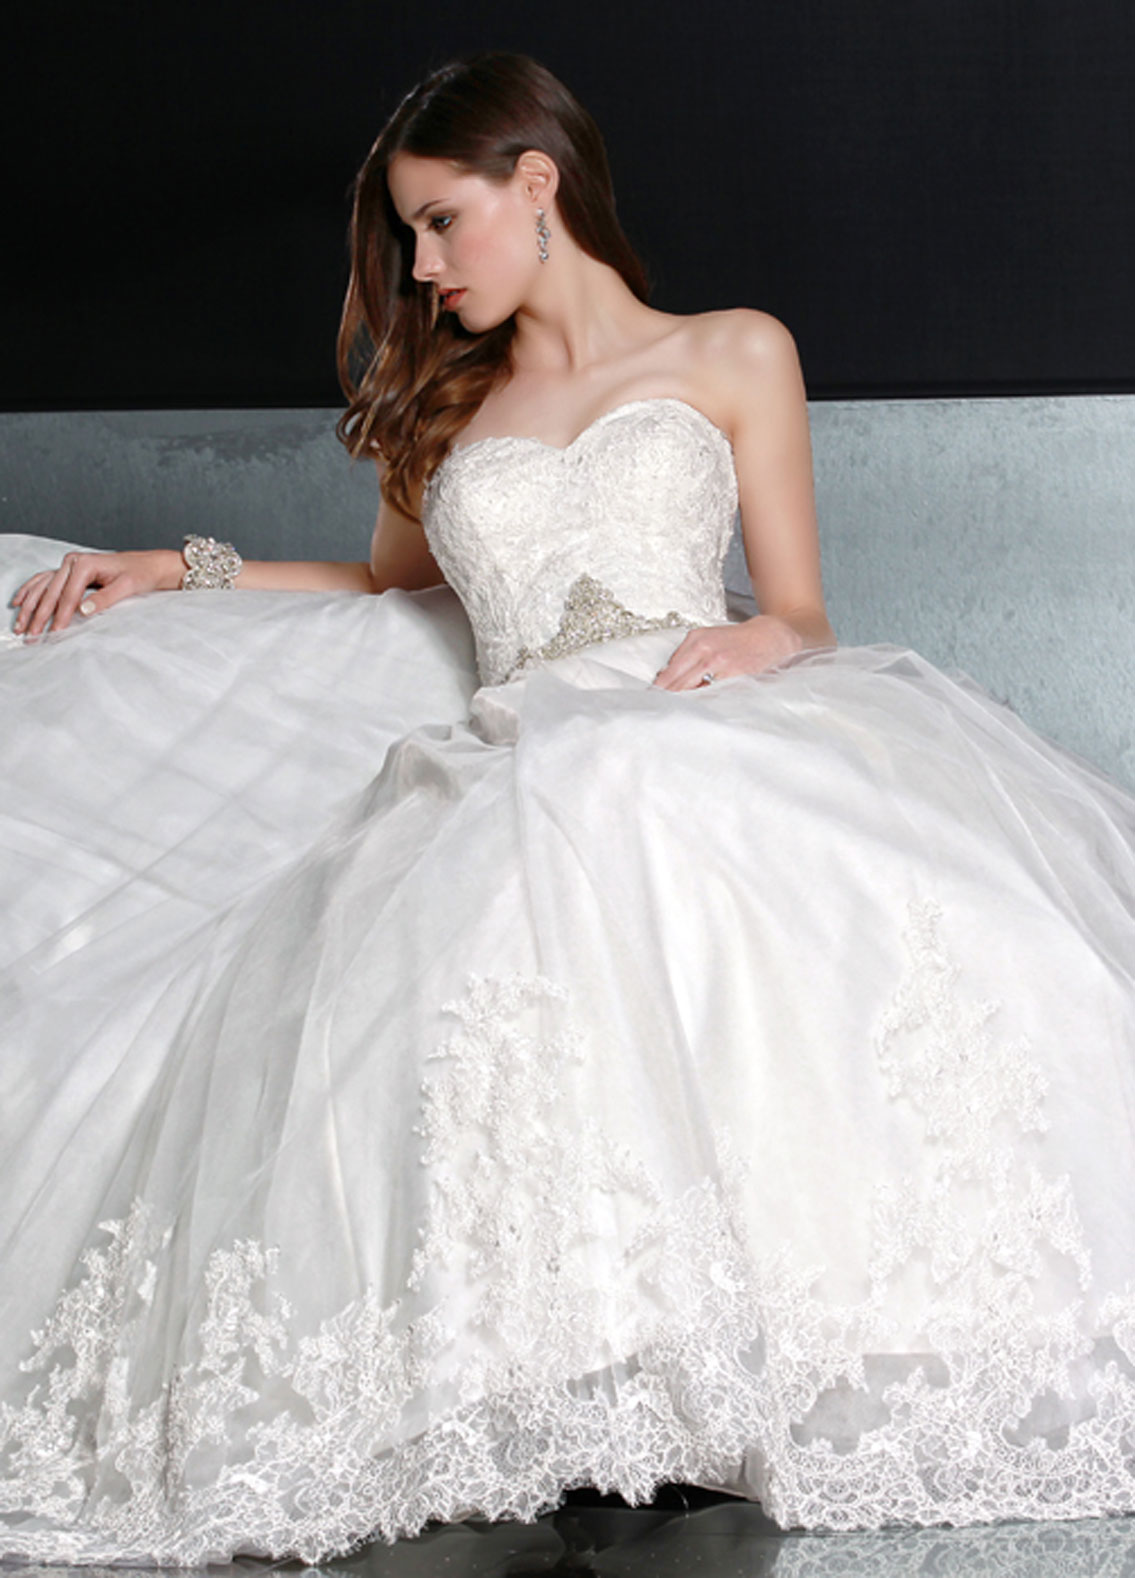 Wedding Dress Style Guide & Ideas | DaVinci Bridal